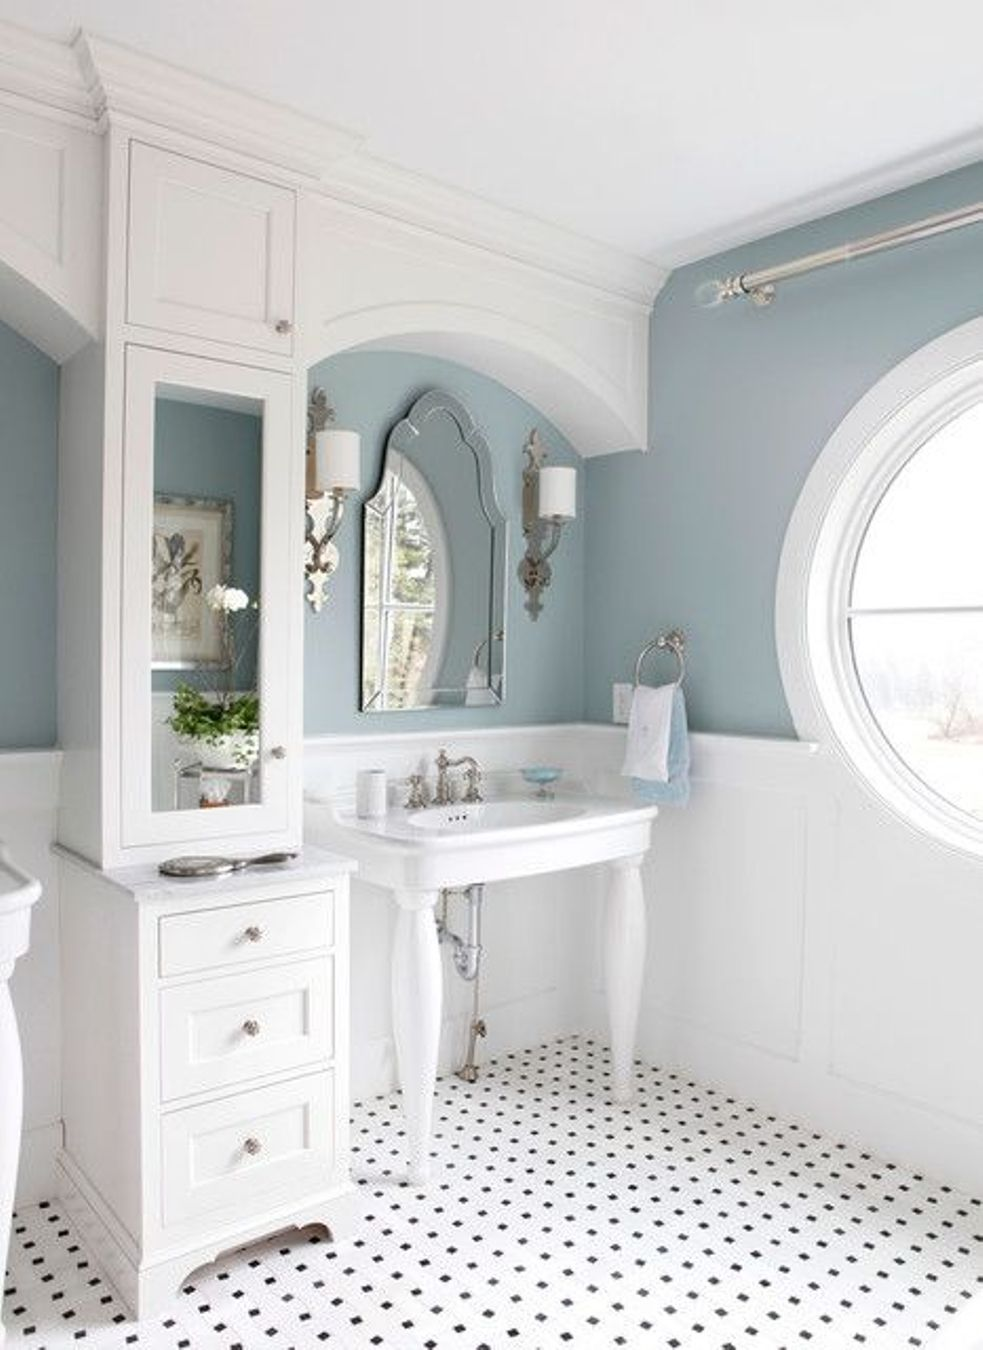 Bathroom Por Paint Colors White And Blue Gray With Circle